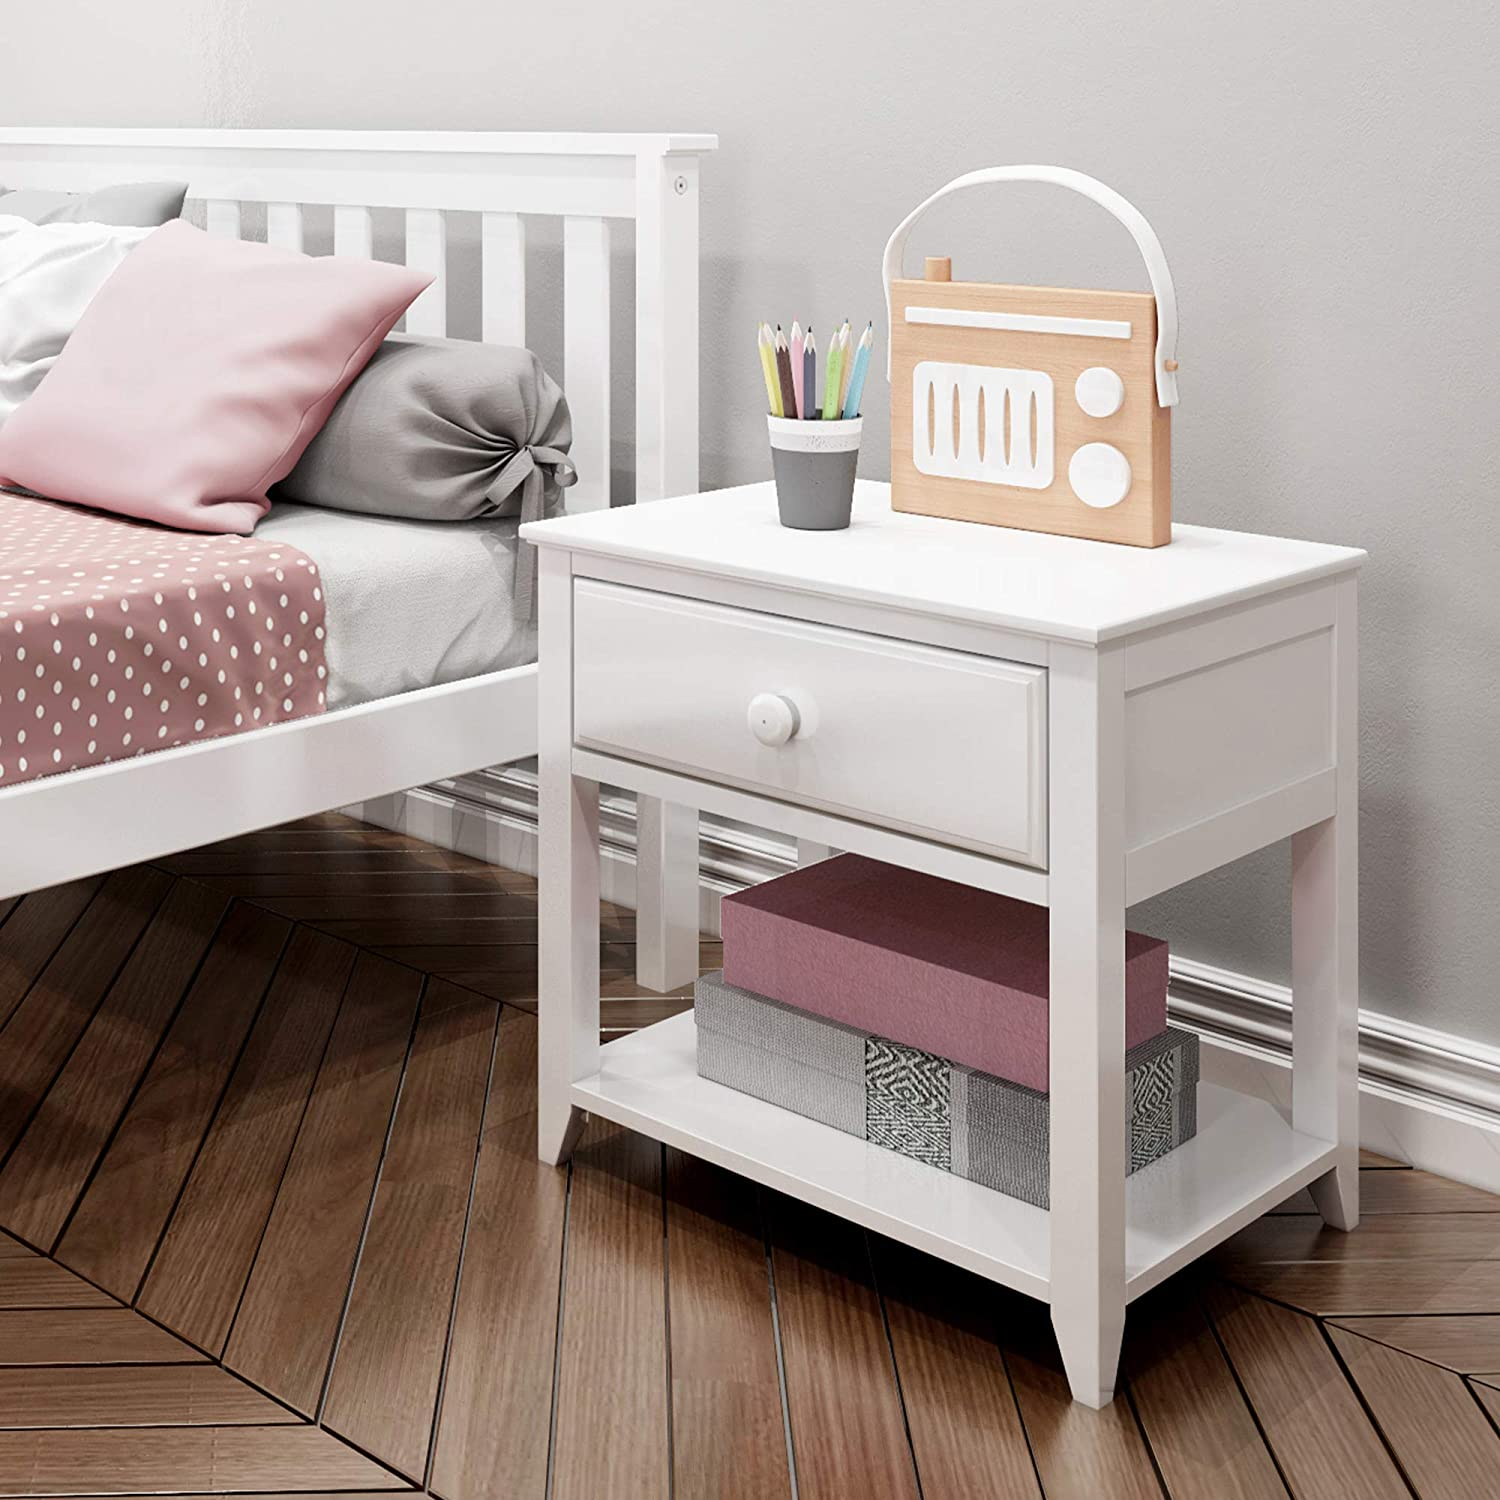 Max /& Lily Nightstand Clay